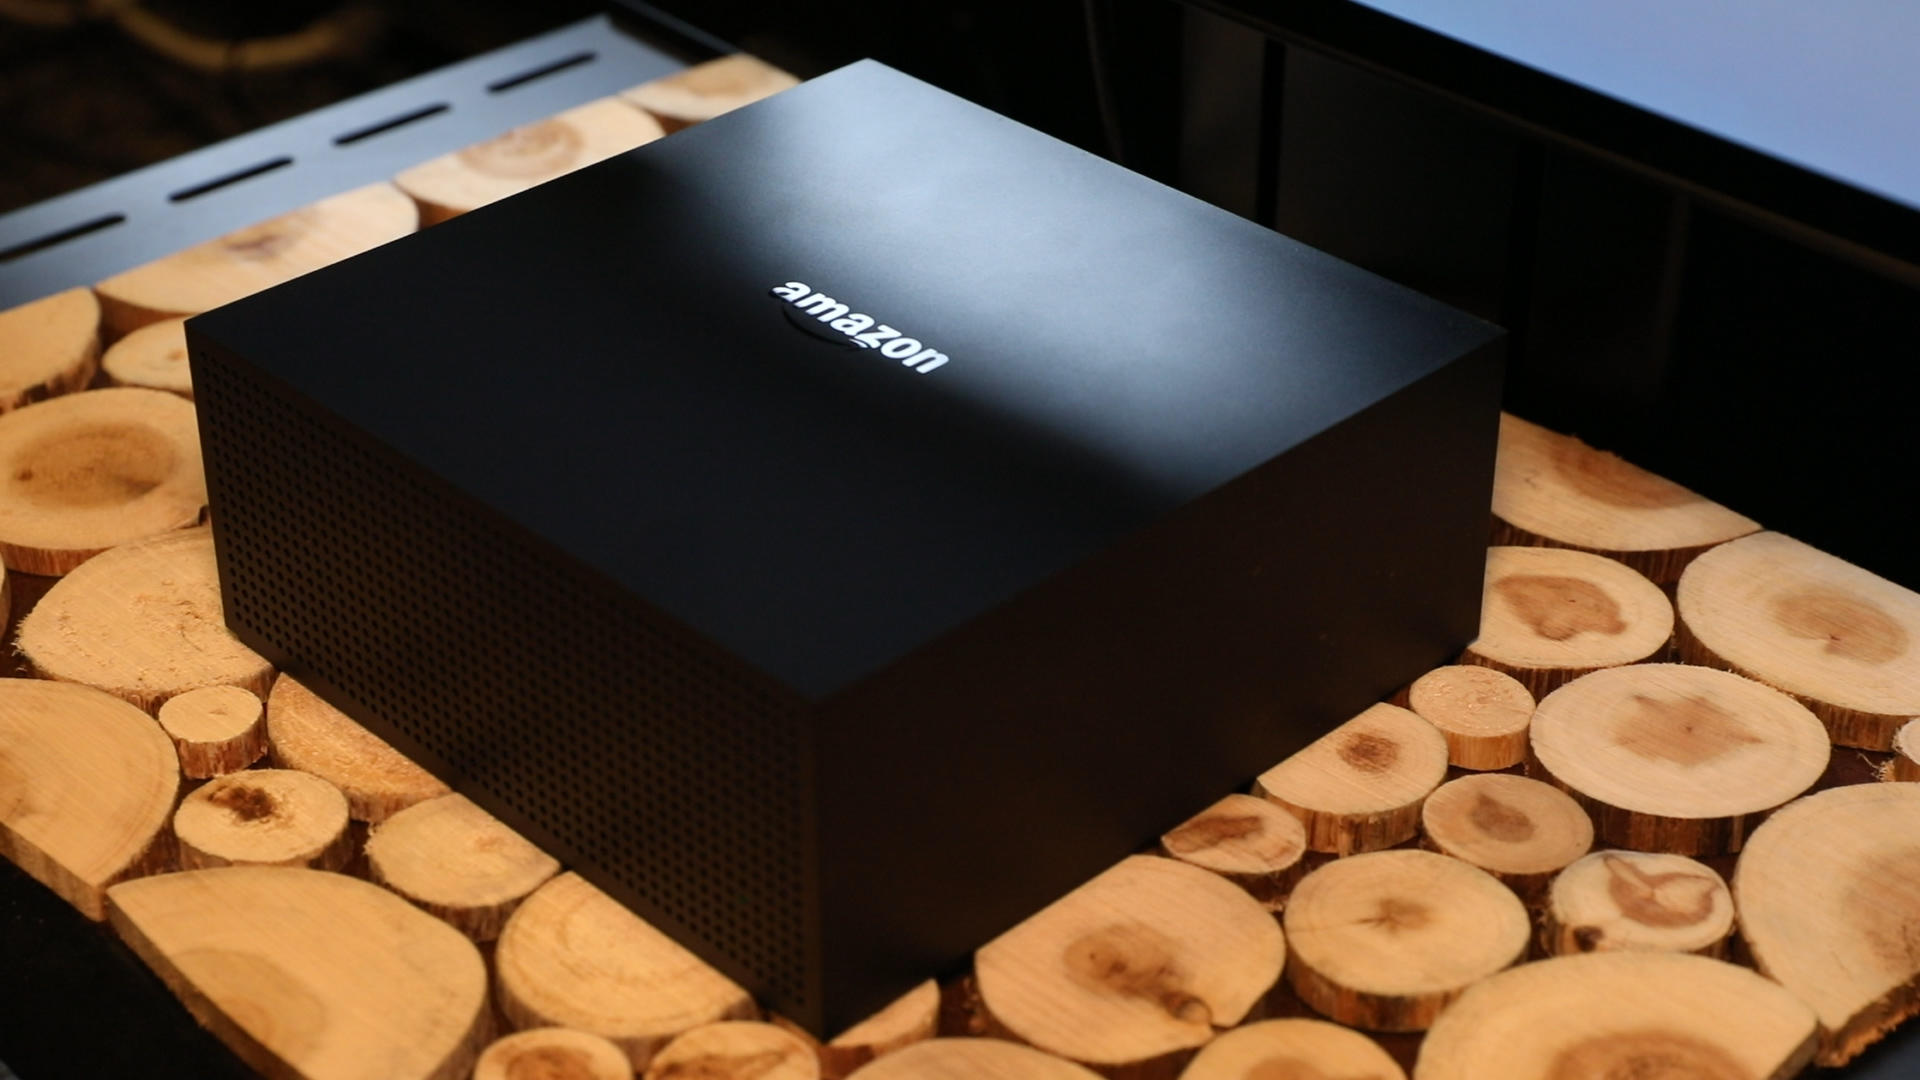 Video: Amazon Fire TV Recast is one of the best DVRs for the money